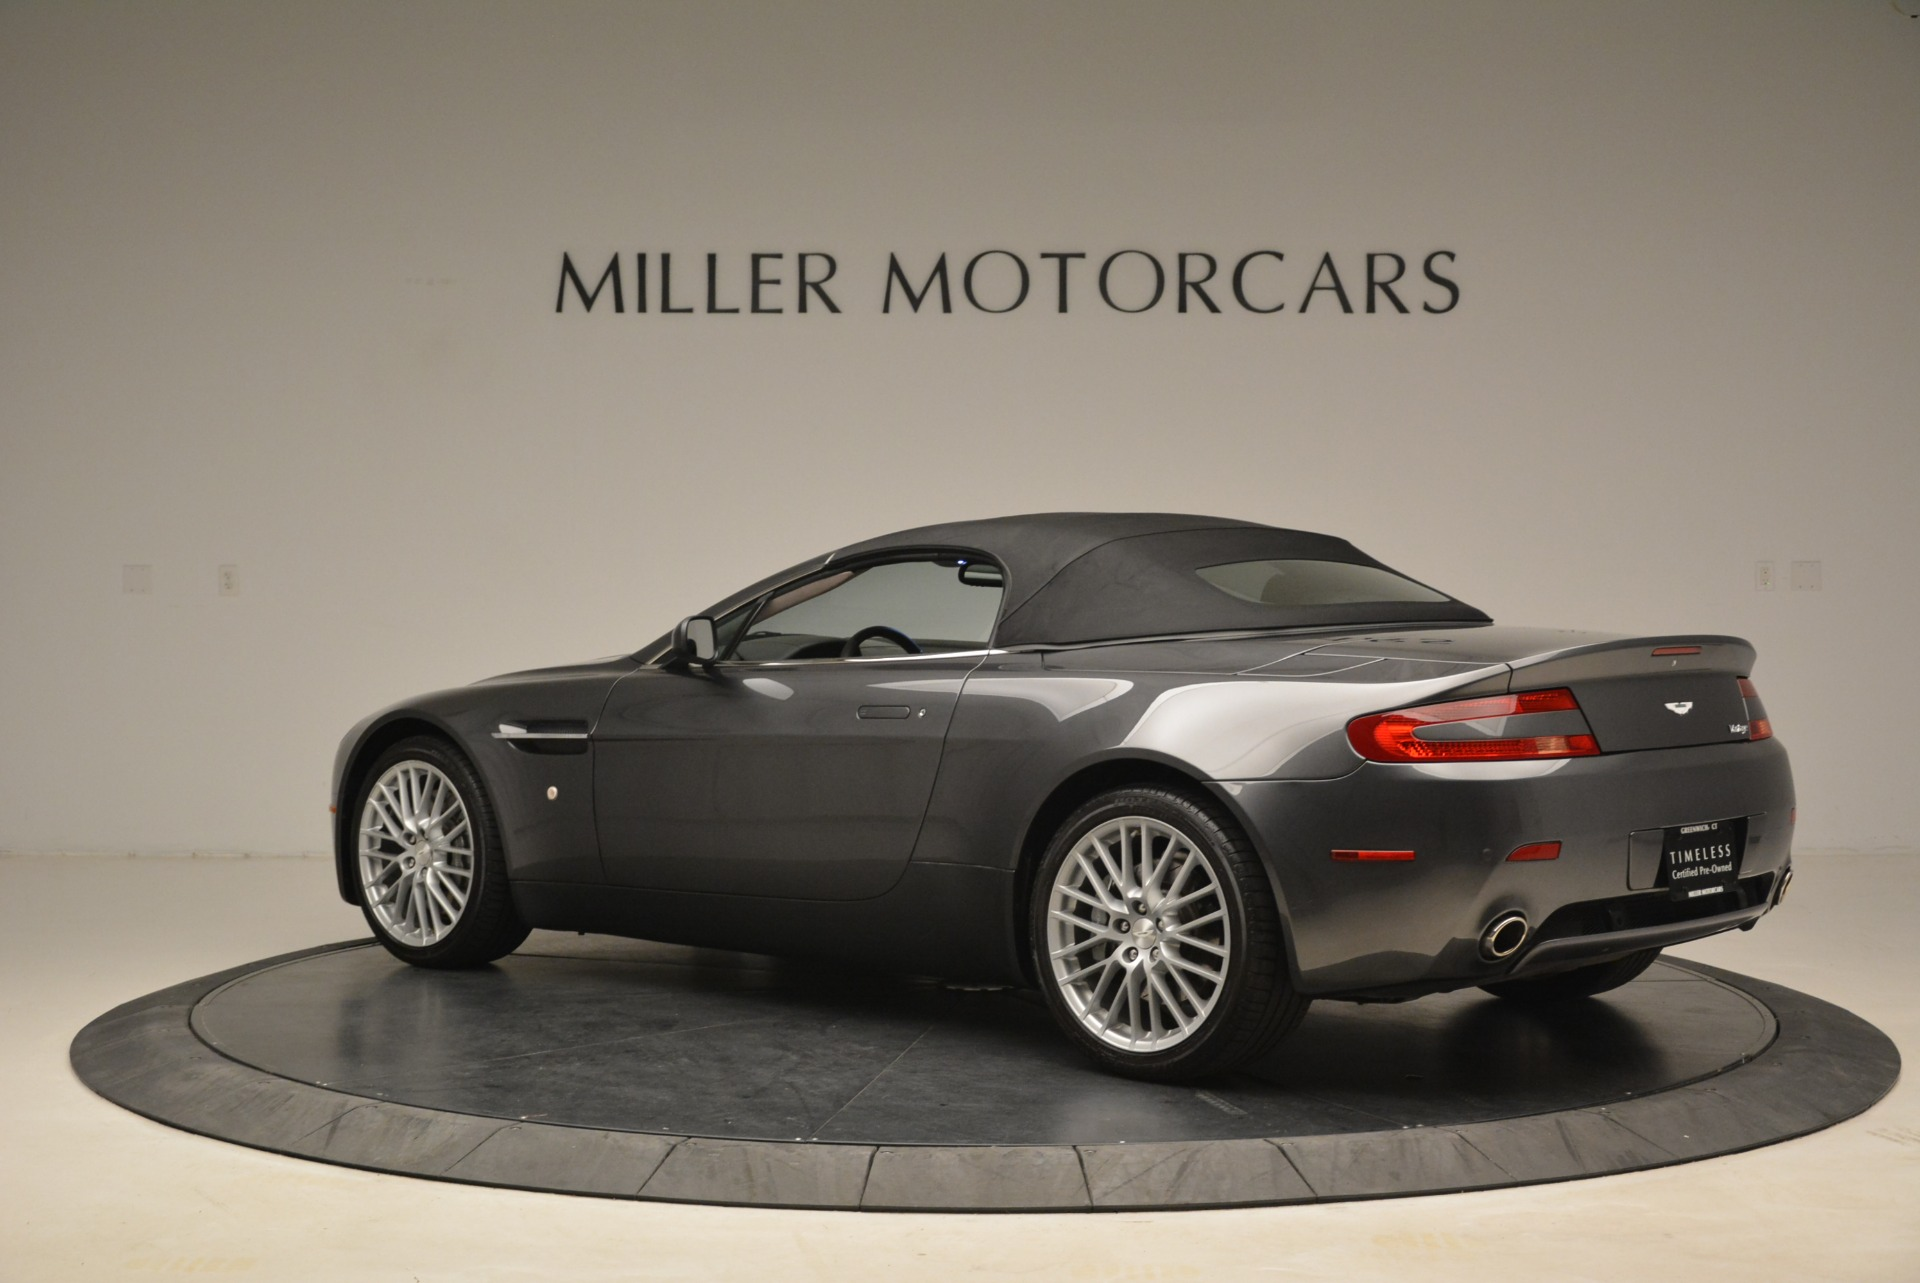 Used 2009 Aston Martin V8 Vantage Roadster For Sale In Greenwich, CT. Alfa Romeo of Greenwich, 7333 2123_p16